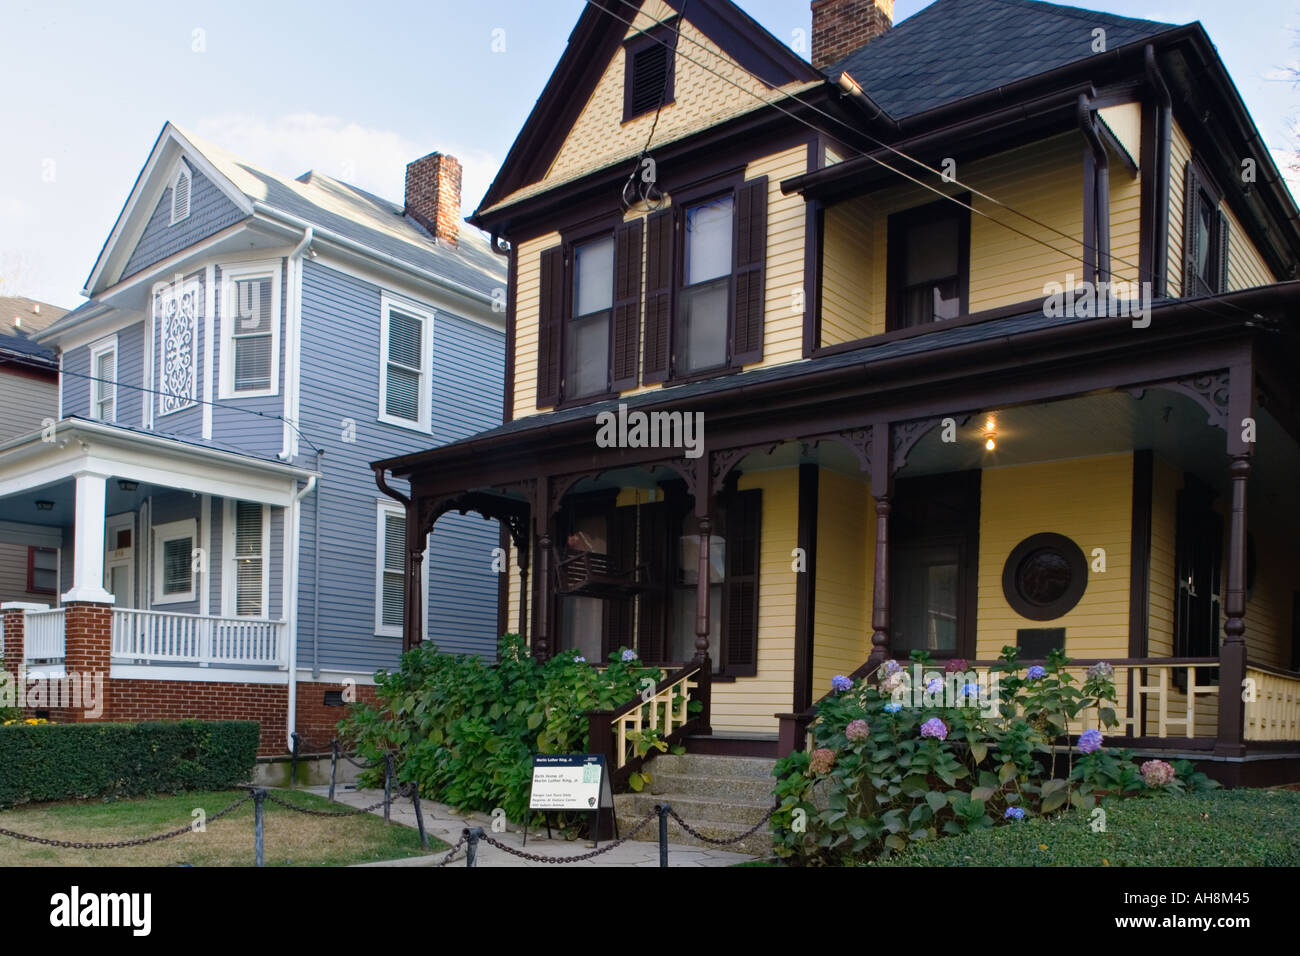 Birthplace of civil rights leader Martin Luther King Jr at the National Historic Site in Atlanta Georgia - Stock Image